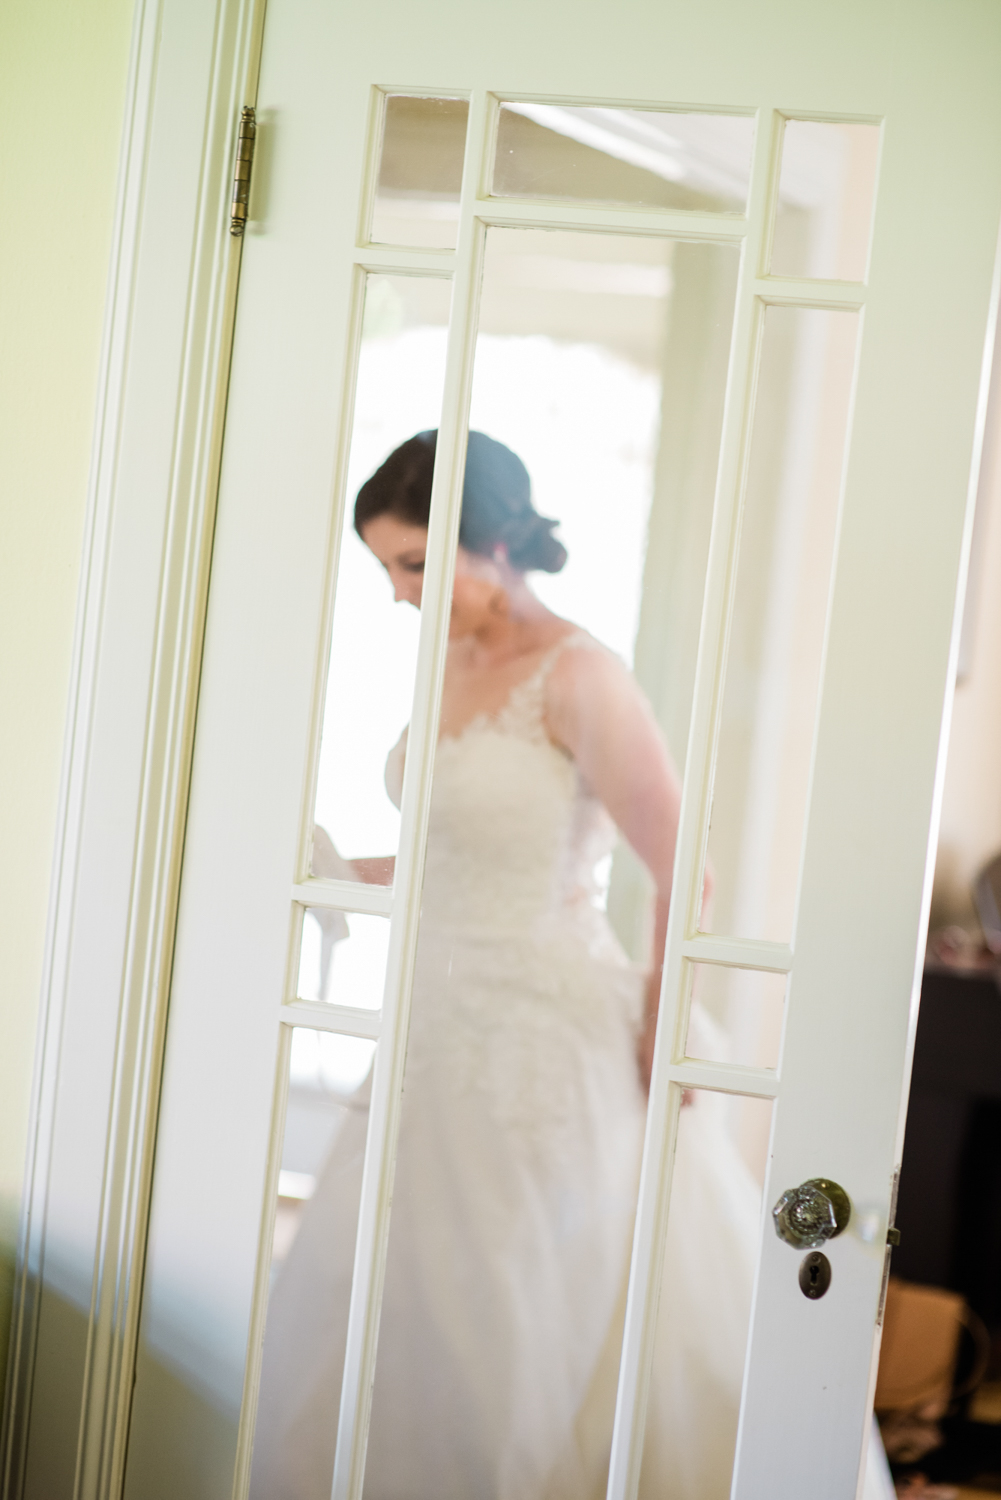 Spring_Piedmont_Community_Hall_Wedding_011.jpg